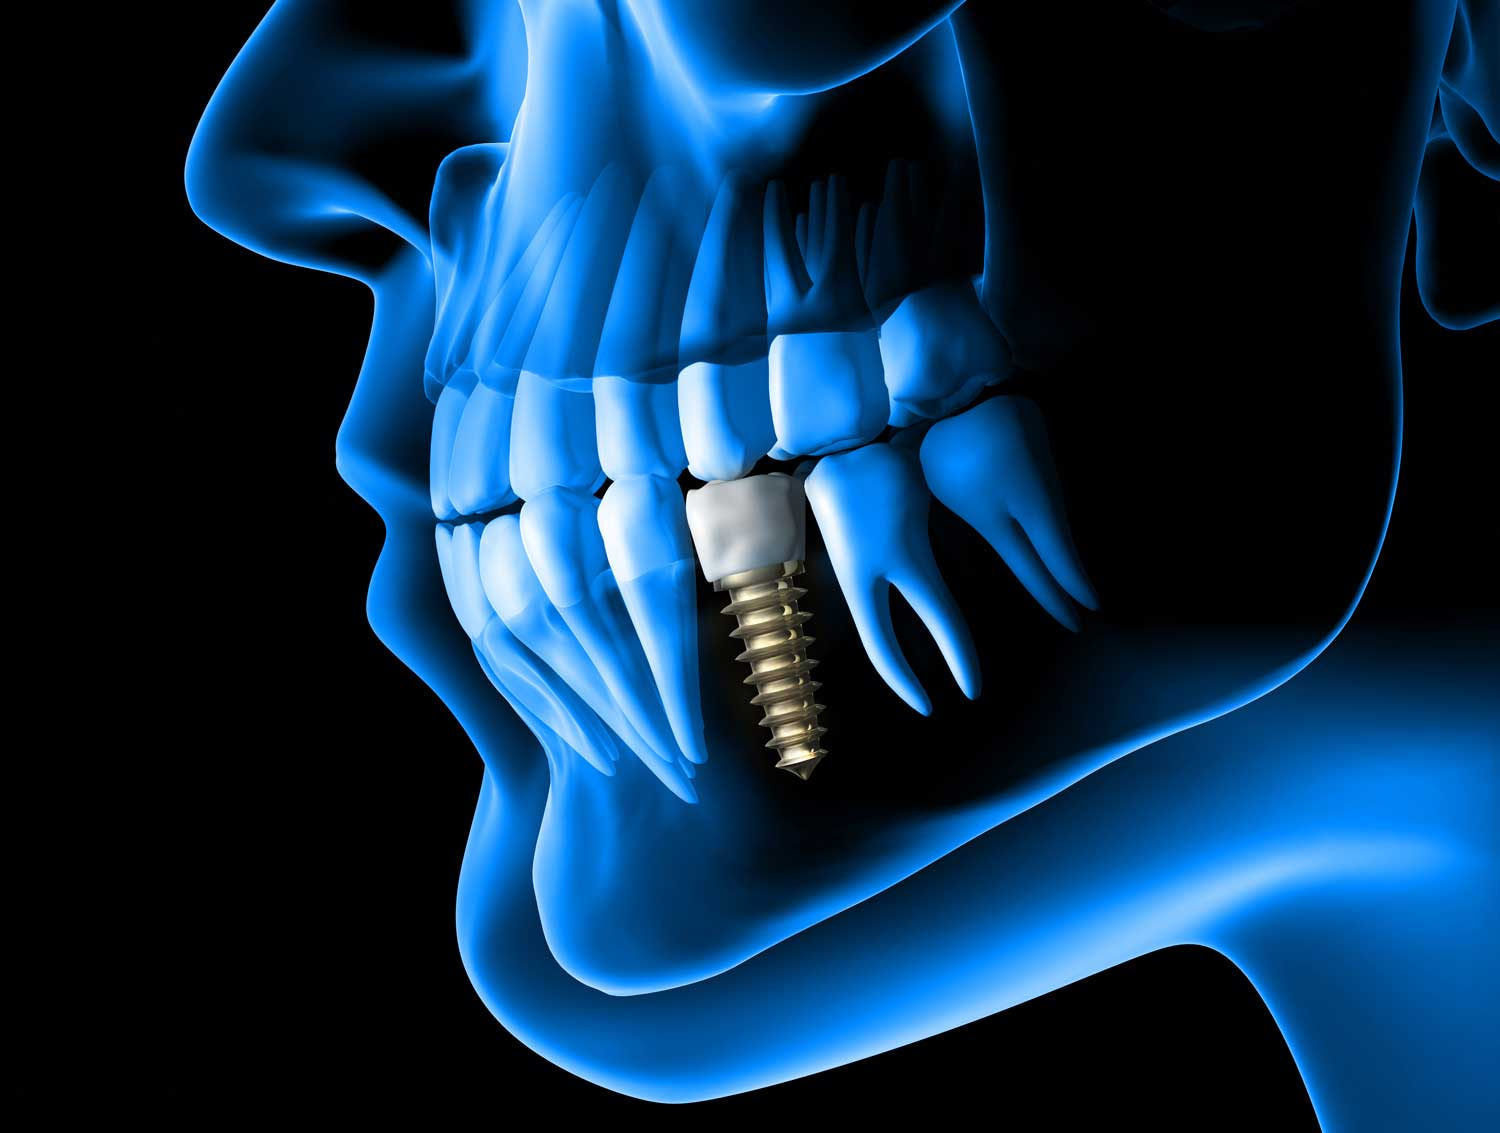 x-ray view of a placed dental implant